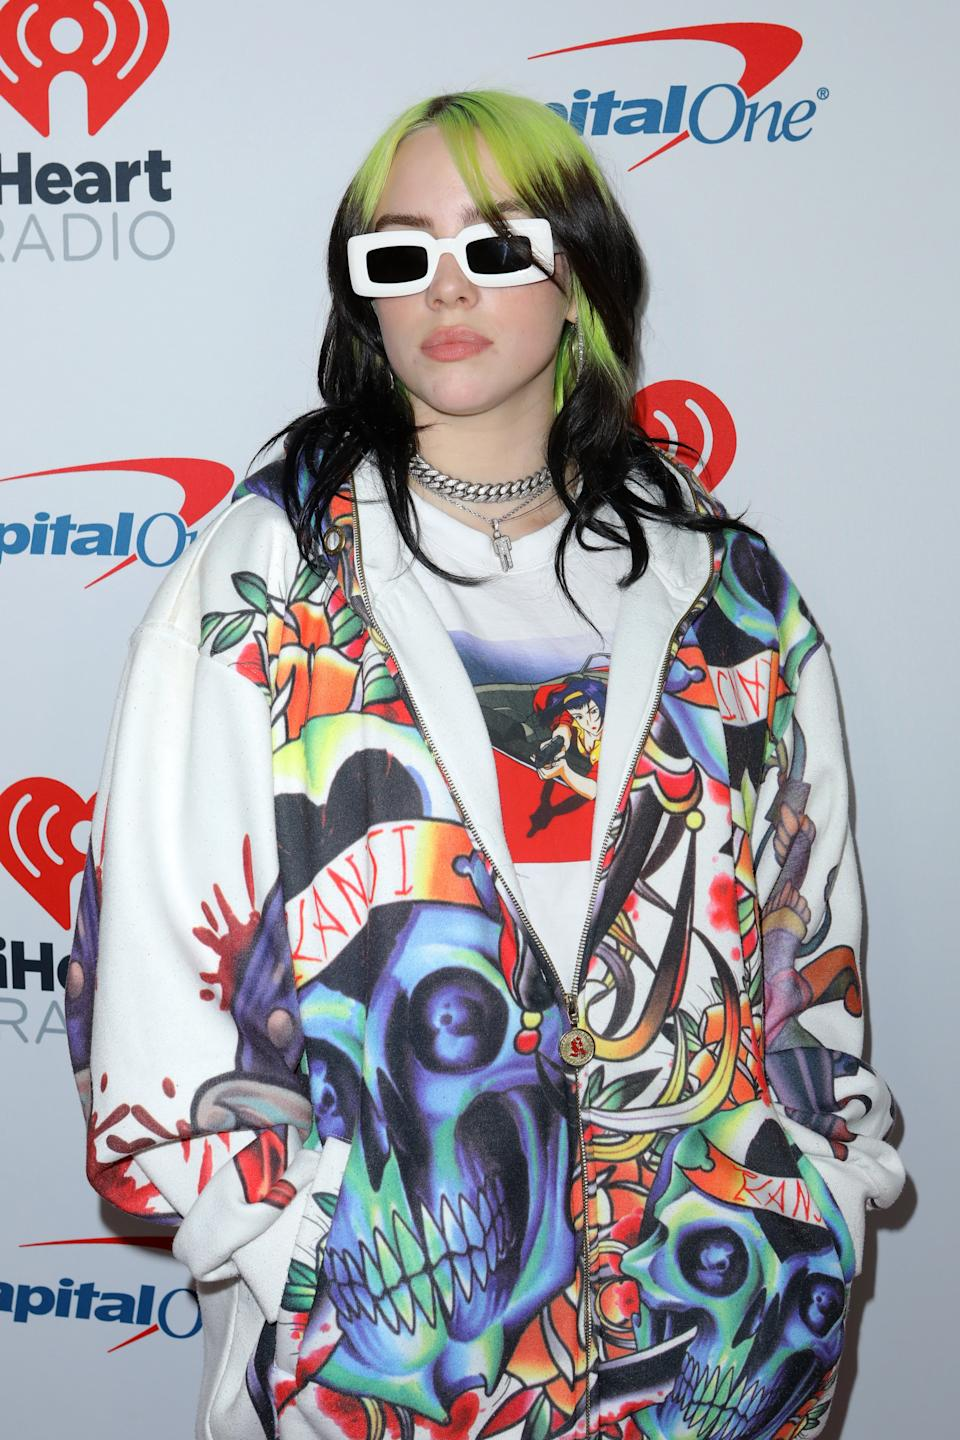 Billie Eilish at the iHeart Radio Awards in January 2020Getty